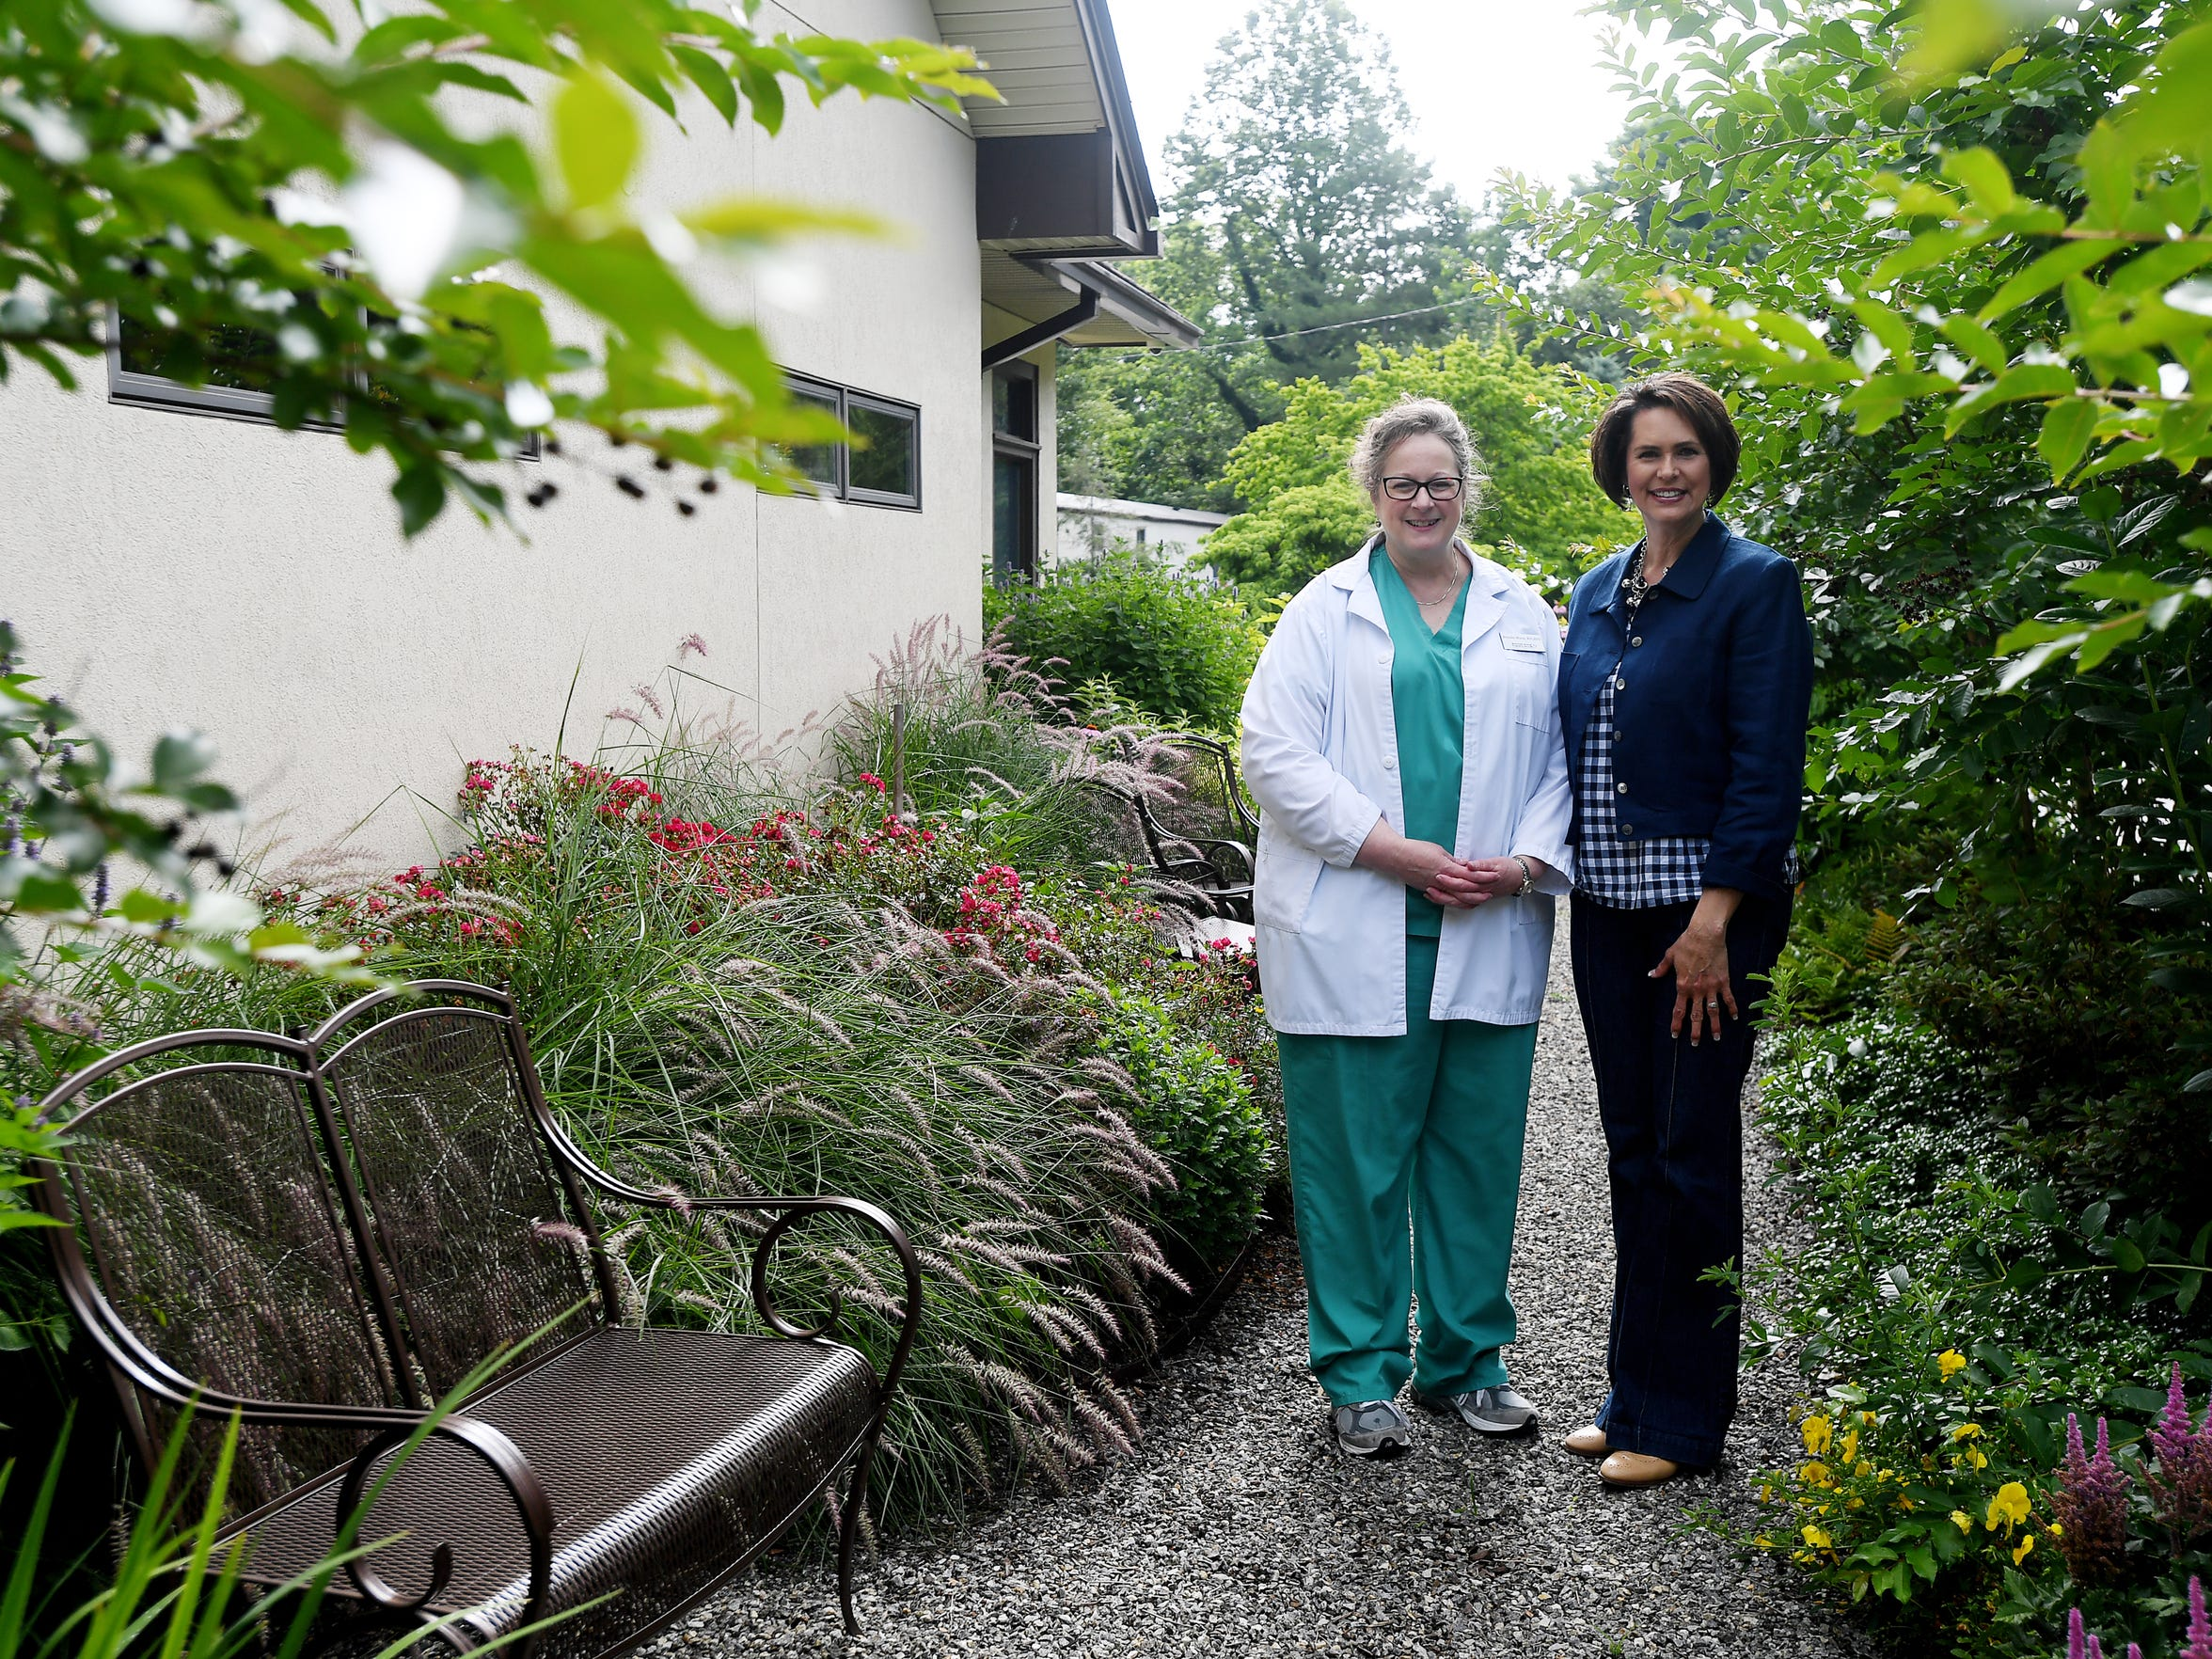 Brenda Mires, a registered nurse and director of clinical services, left, and Debbie Hrncir, a member of the Mountain Area Pregnancy Services board, in the facility's prayer garden on June 14.